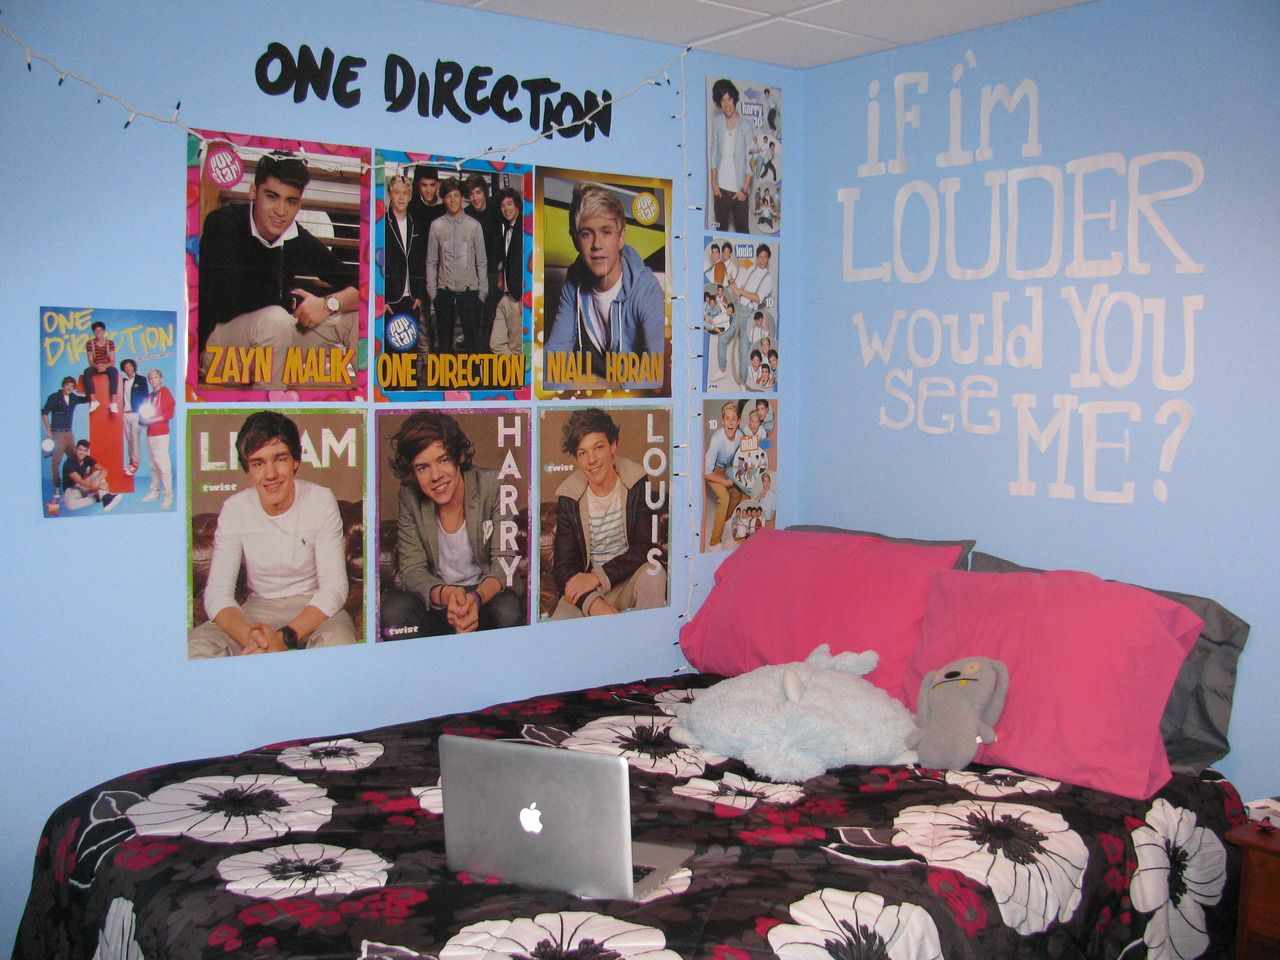 Tumblr collages one direction images amp pictures becuo - One Direction Bedroom Ideas Tumblr Rooms Bed Room 1d 1d Room One Direction Blue